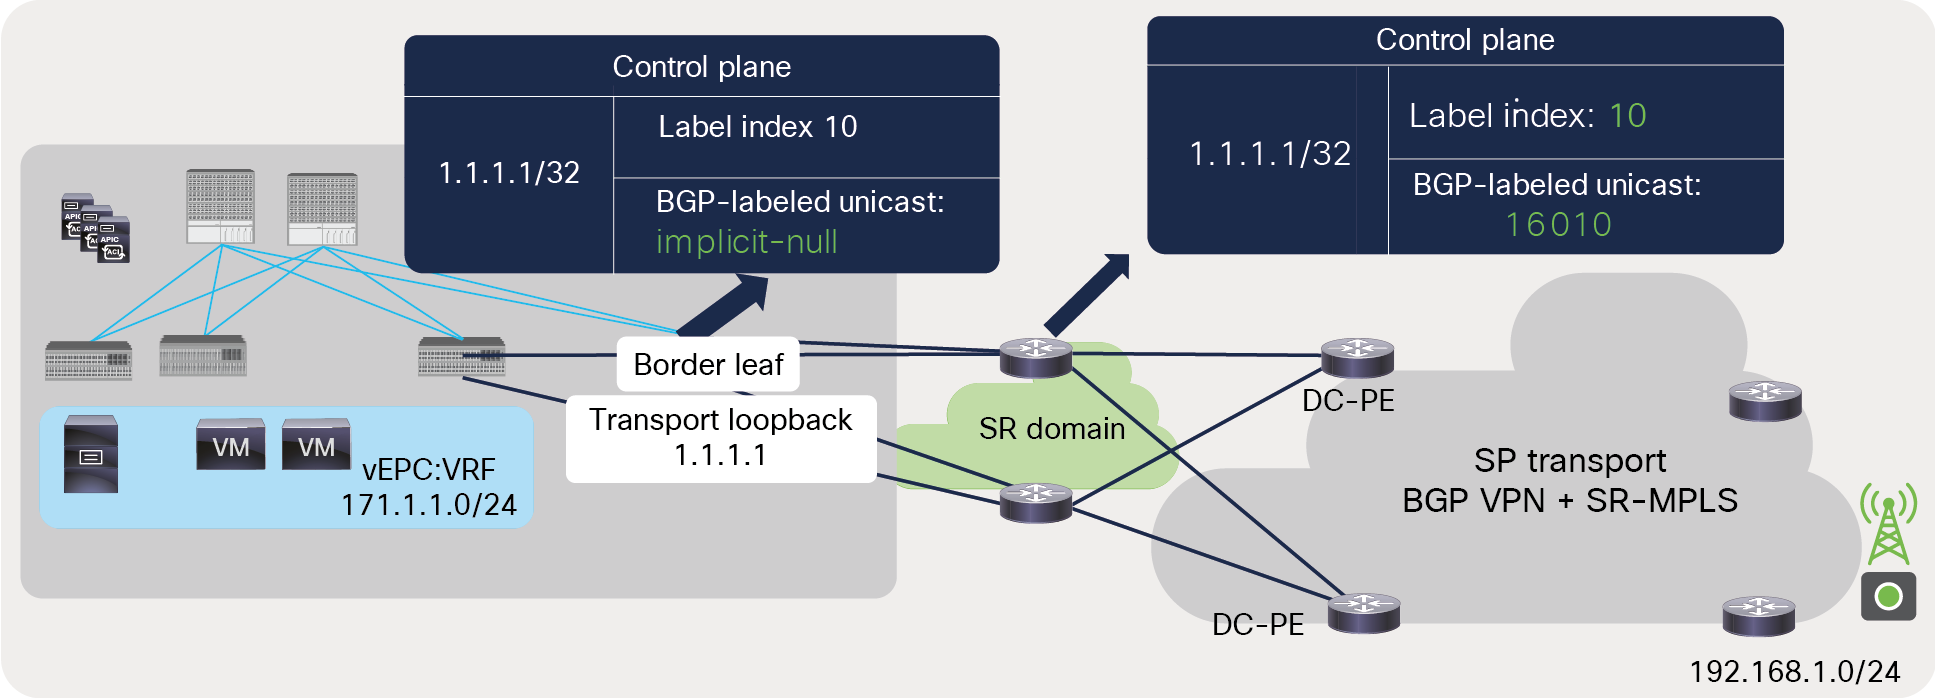 BGP-LU label advertisement from ACI border leaf to DC-PE across an SR-MPLS network